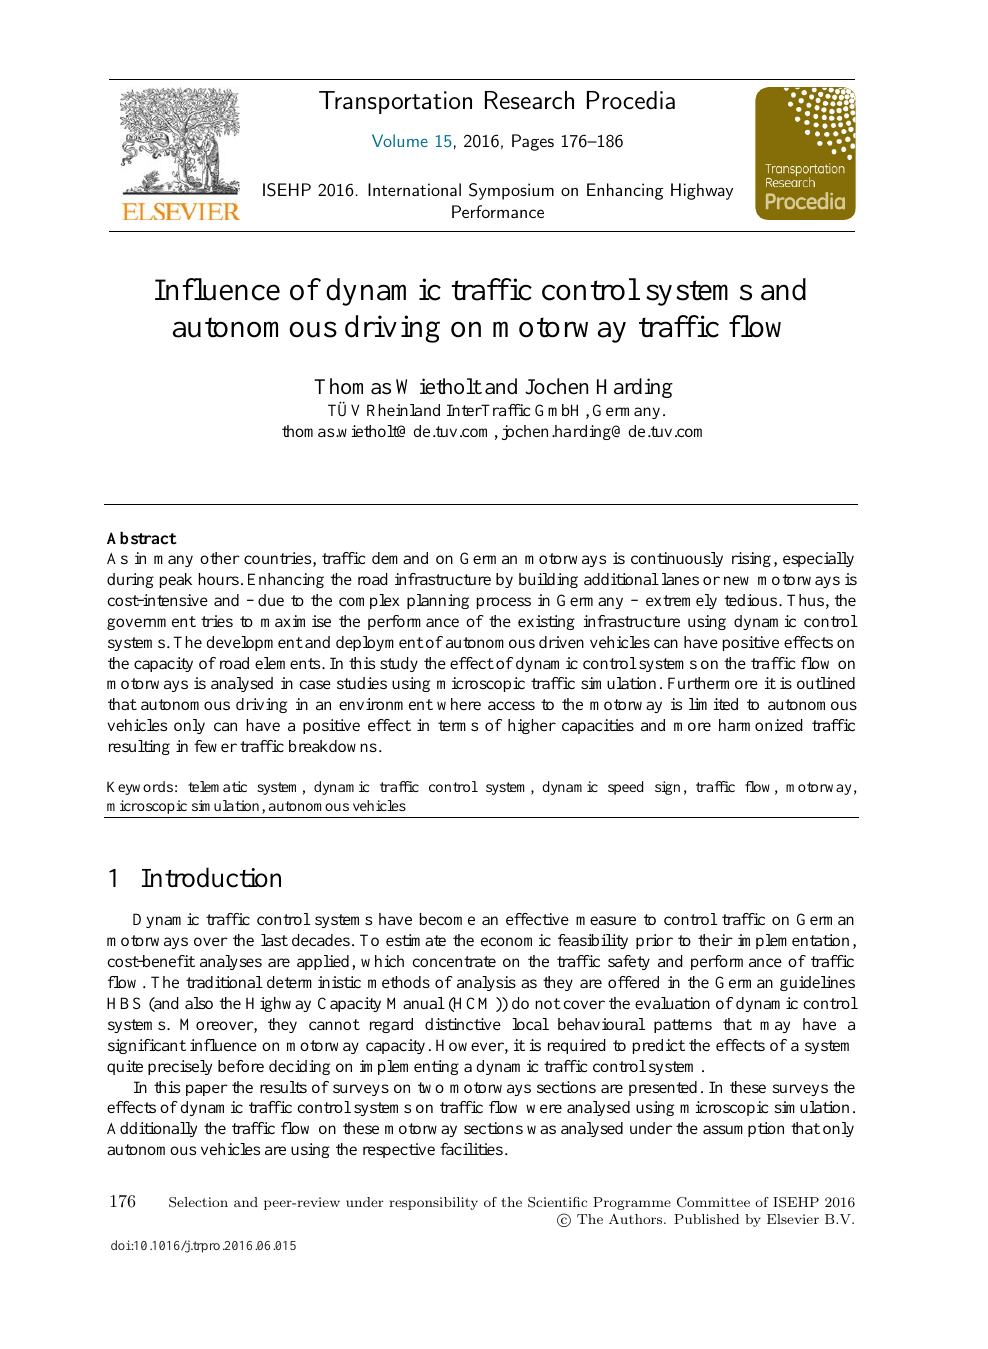 Influence of Dynamic Traffic Control Systems and Autonomous